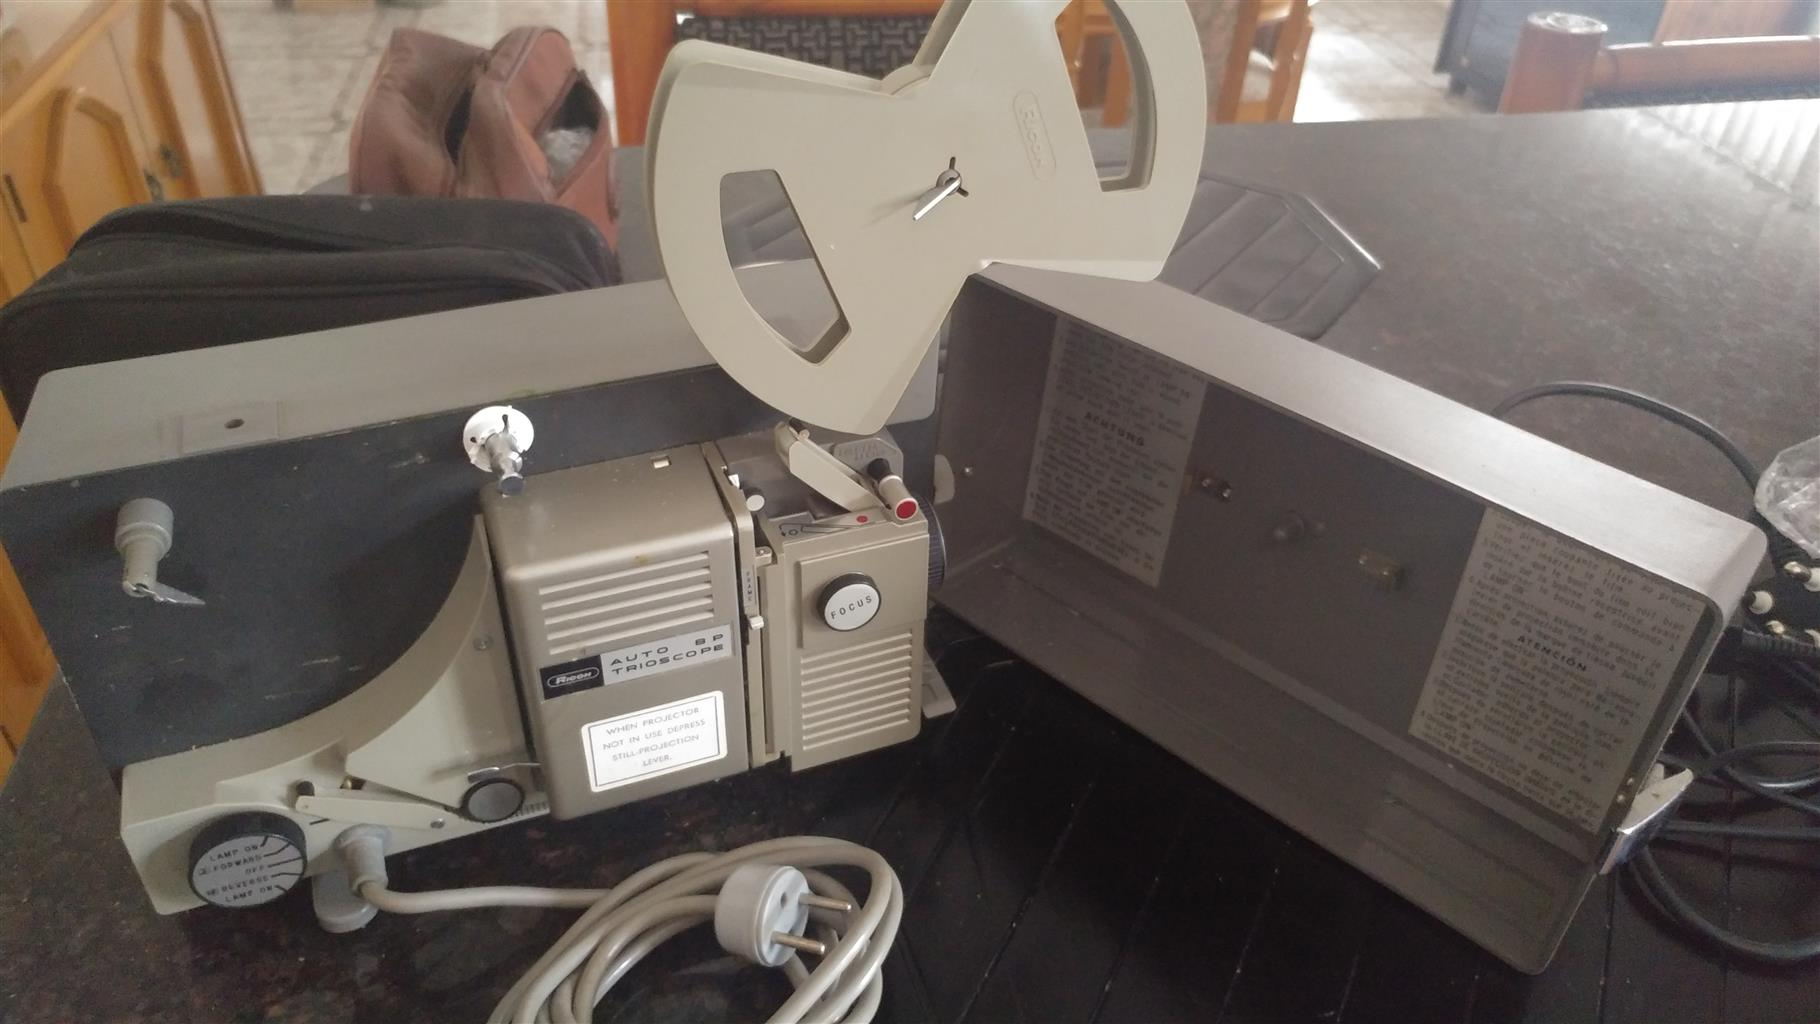 8mm Ricoh home movie projector